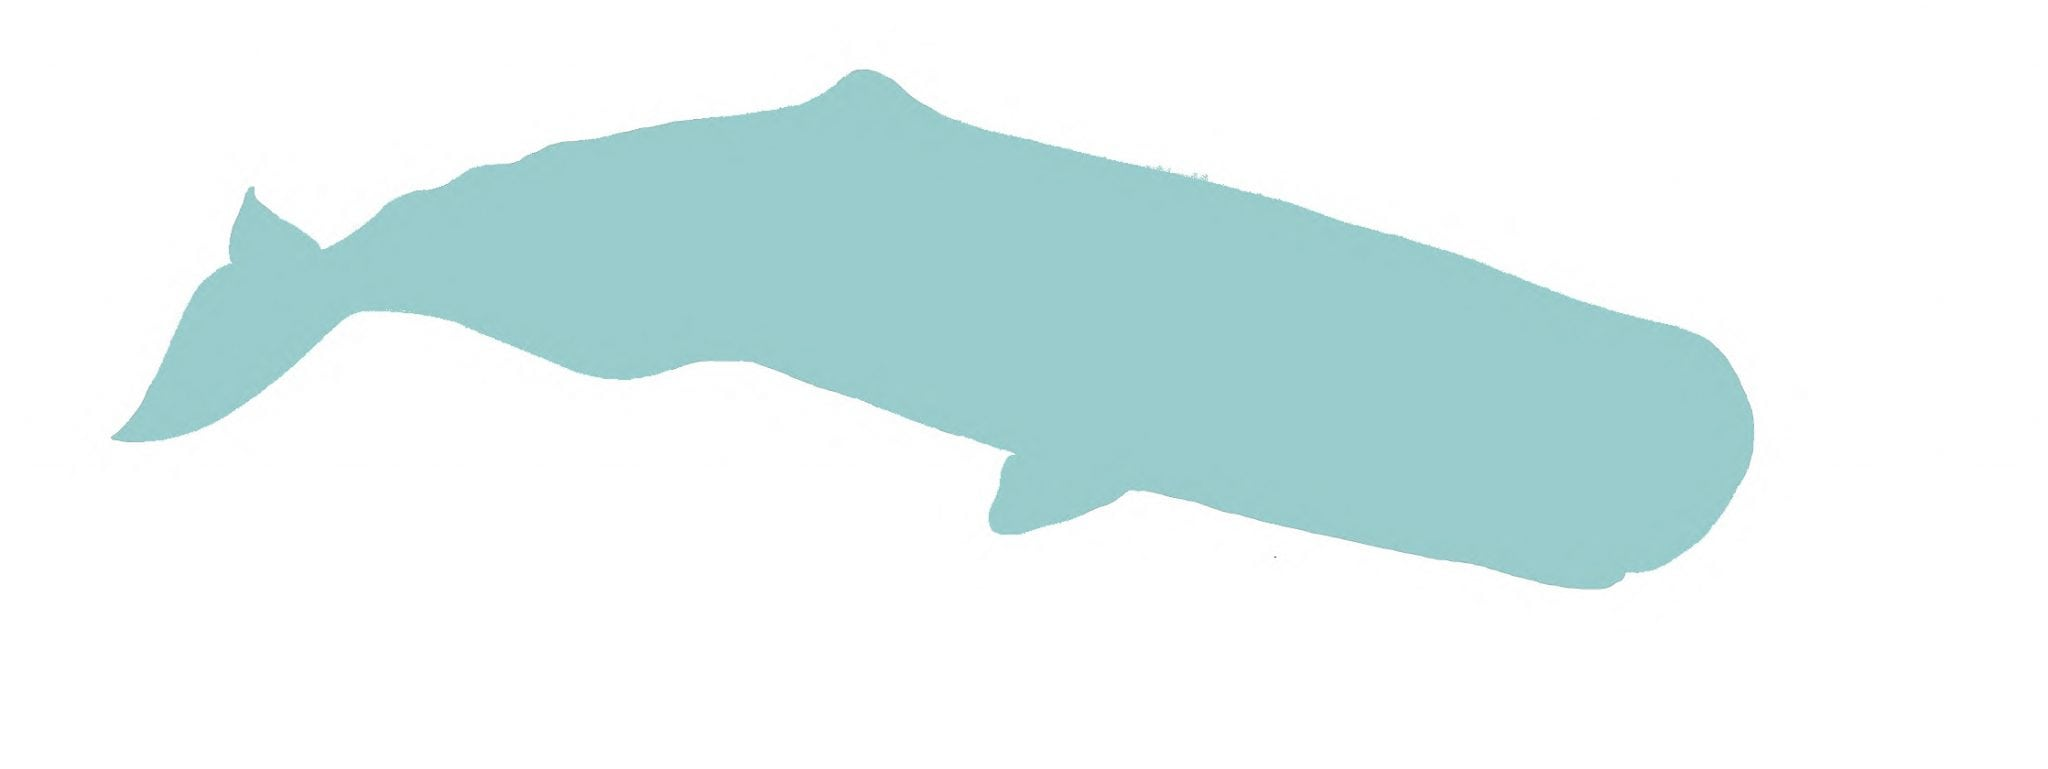 Sperm whale illustration